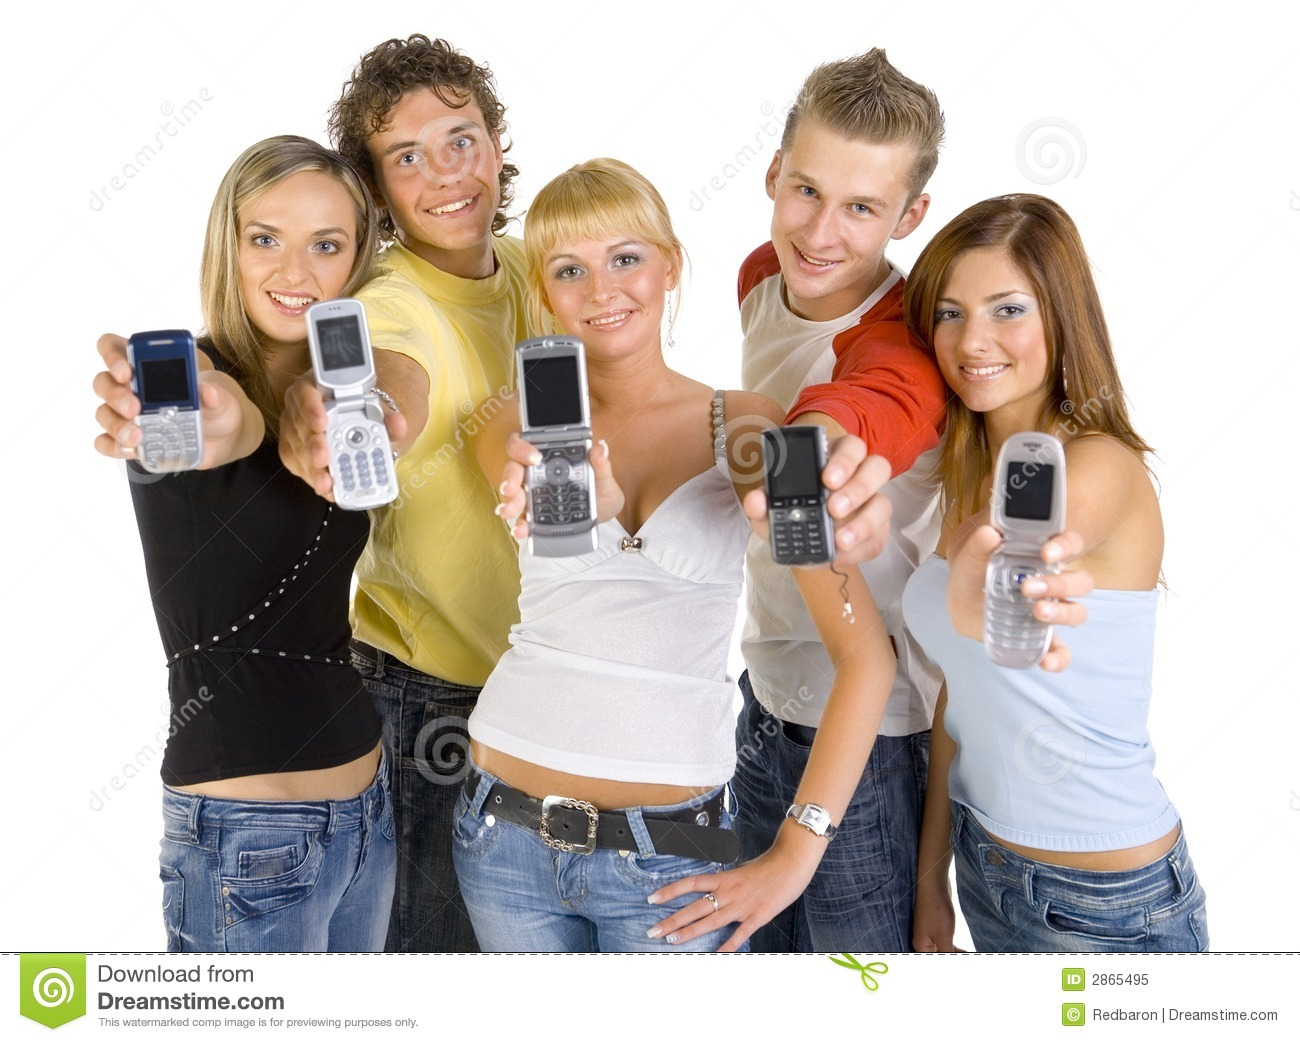 essay on mobile phones and teenagers